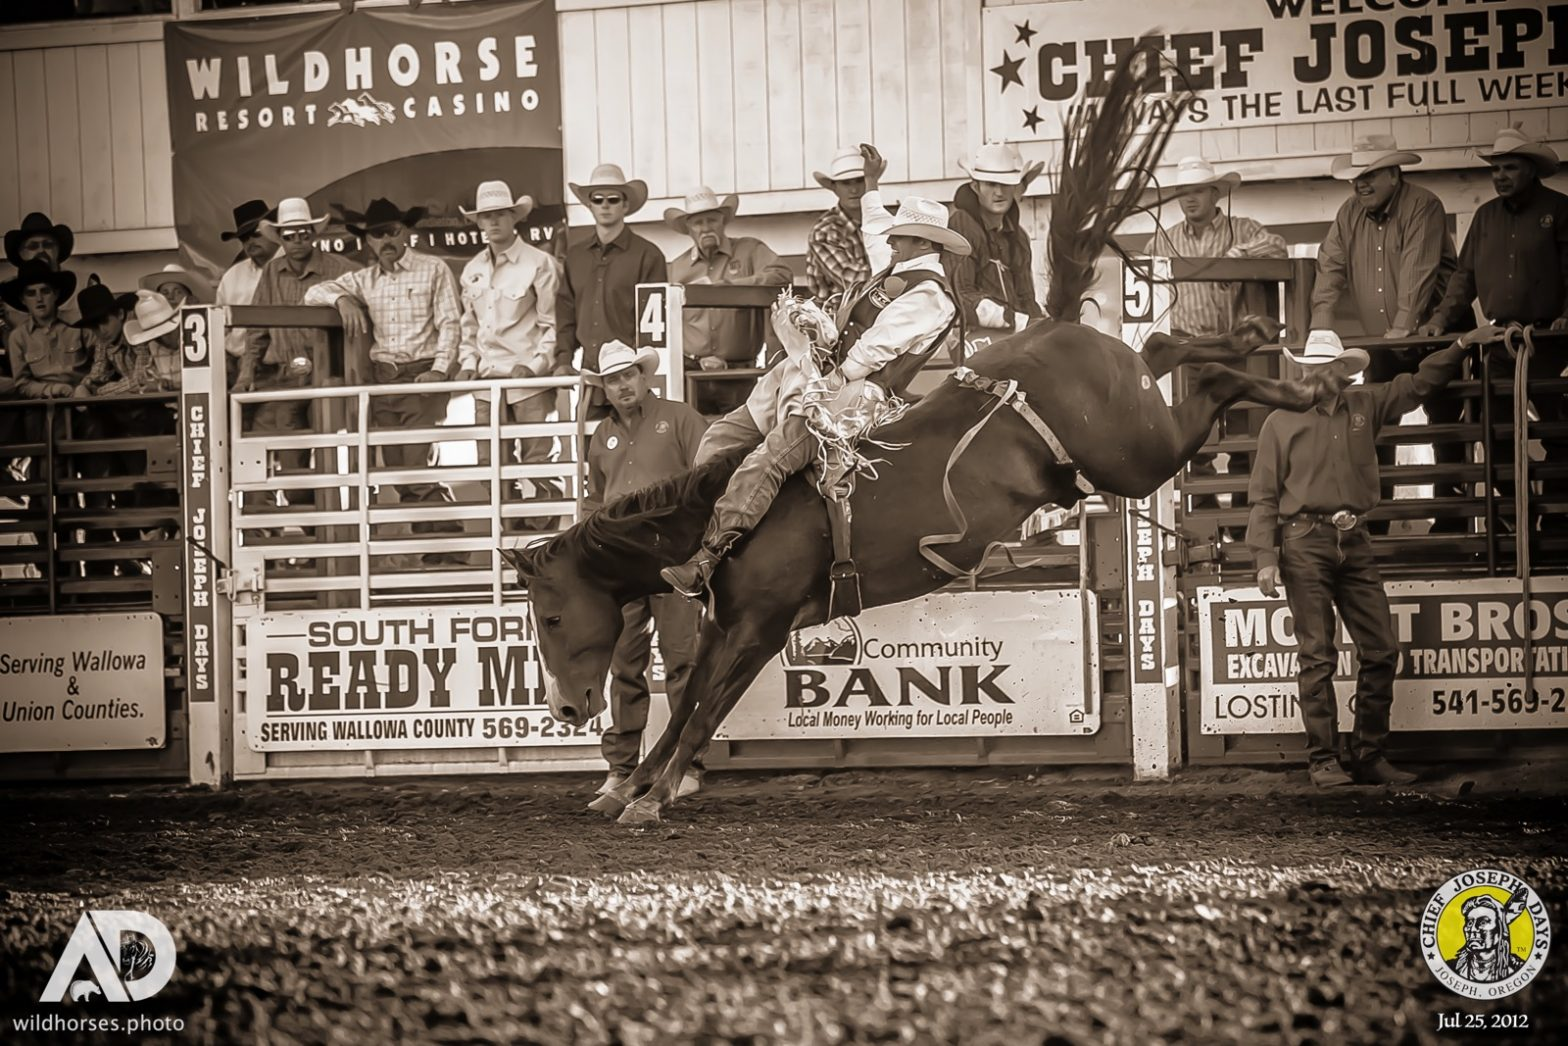 Countdown to 75th Chief Joseph Days Rodeo with Josi Young